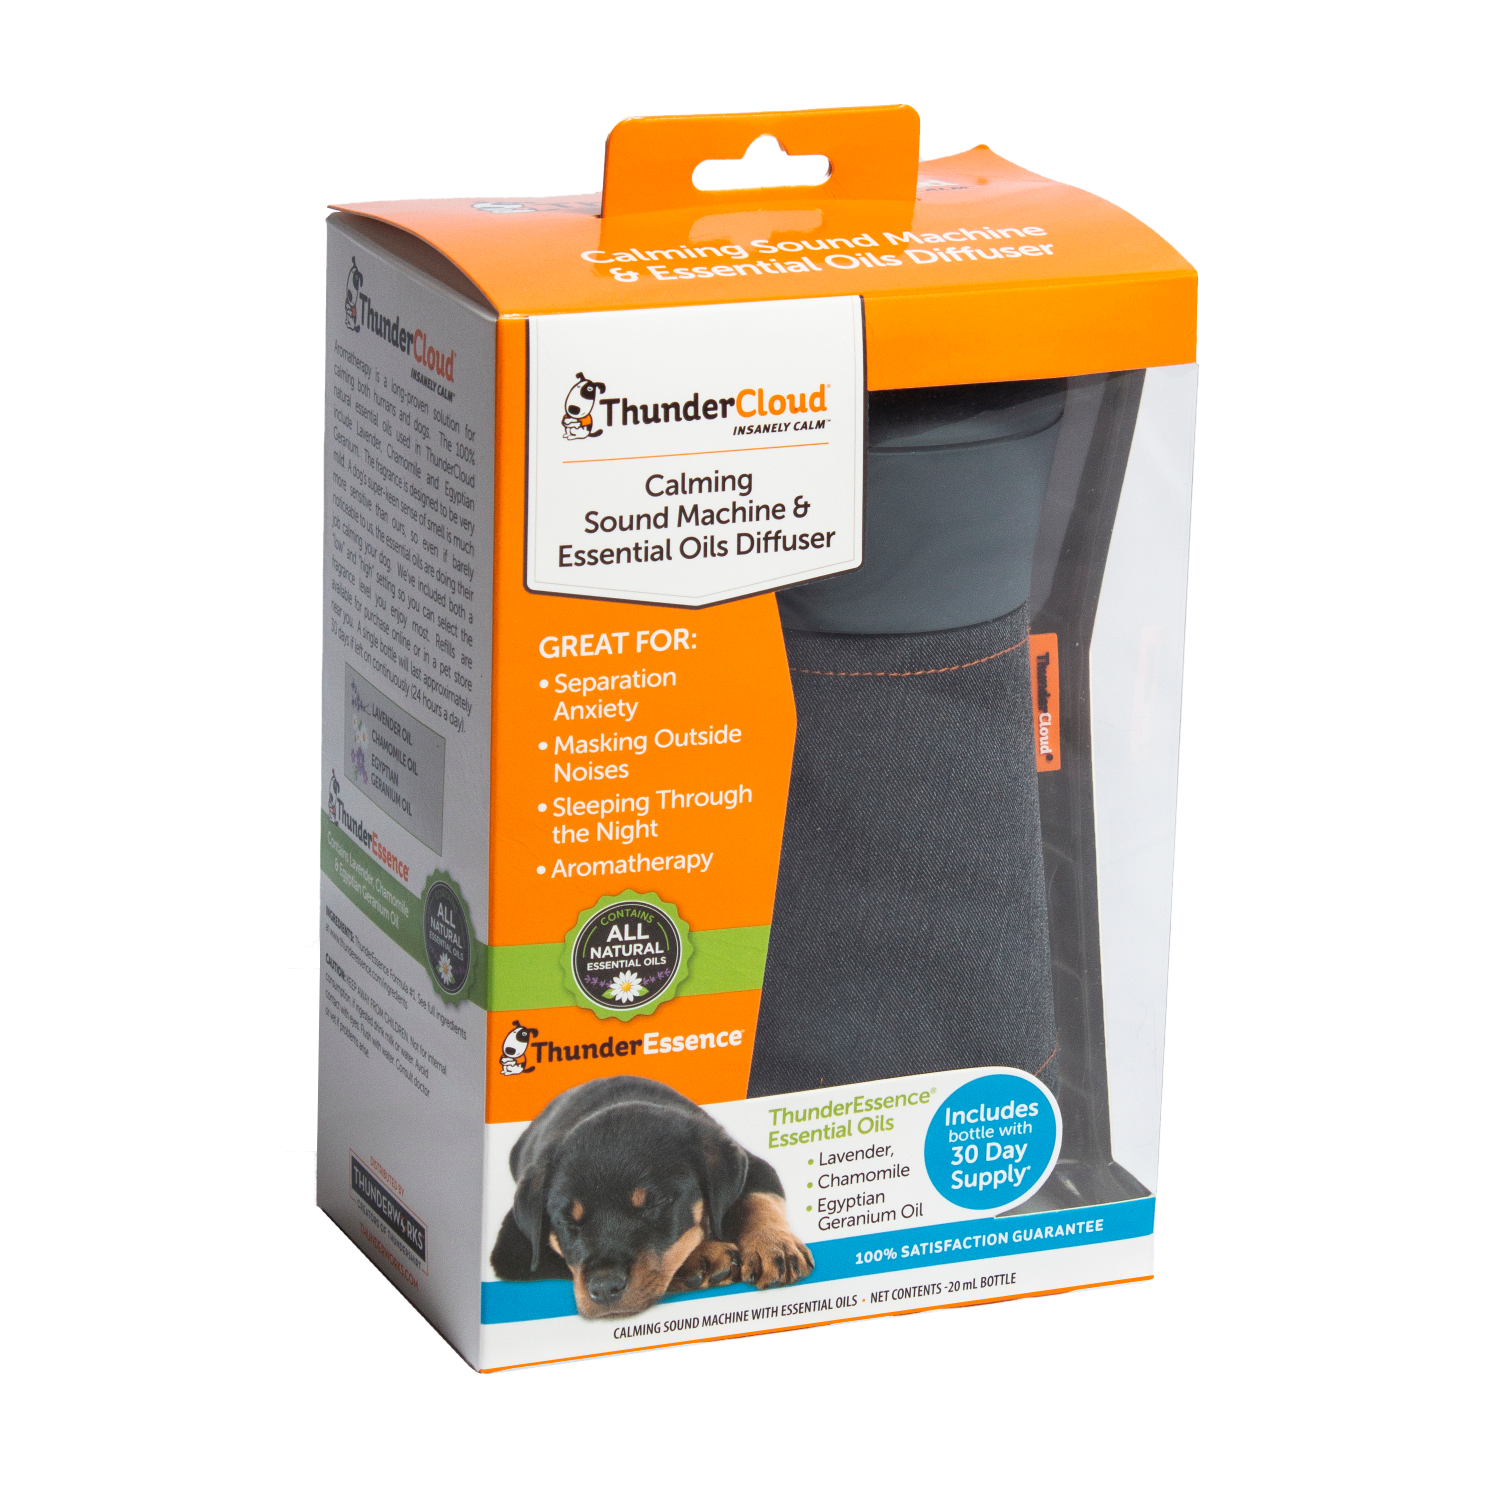 ThunderCloud calming sound machine for dogs with essential oils for dogs